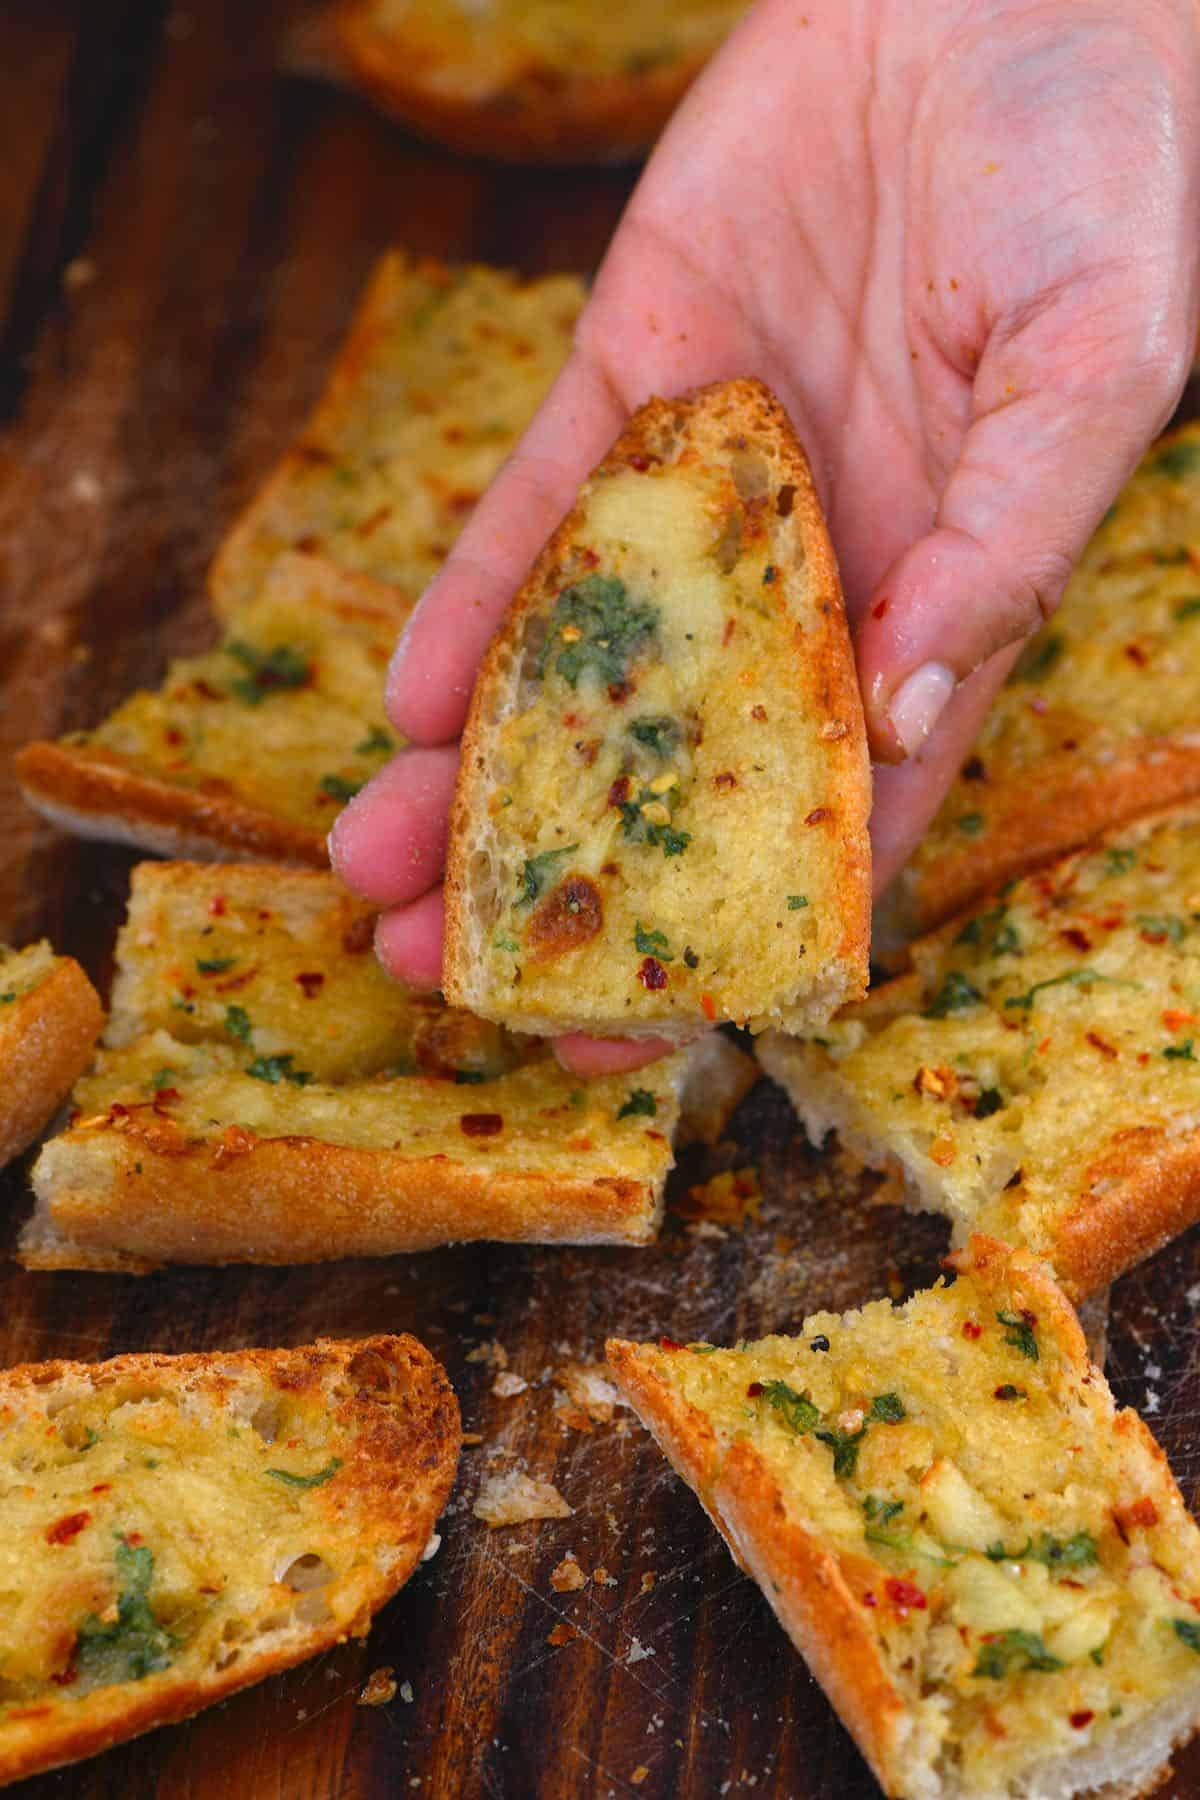 Holding a piece of roasted garlic bread